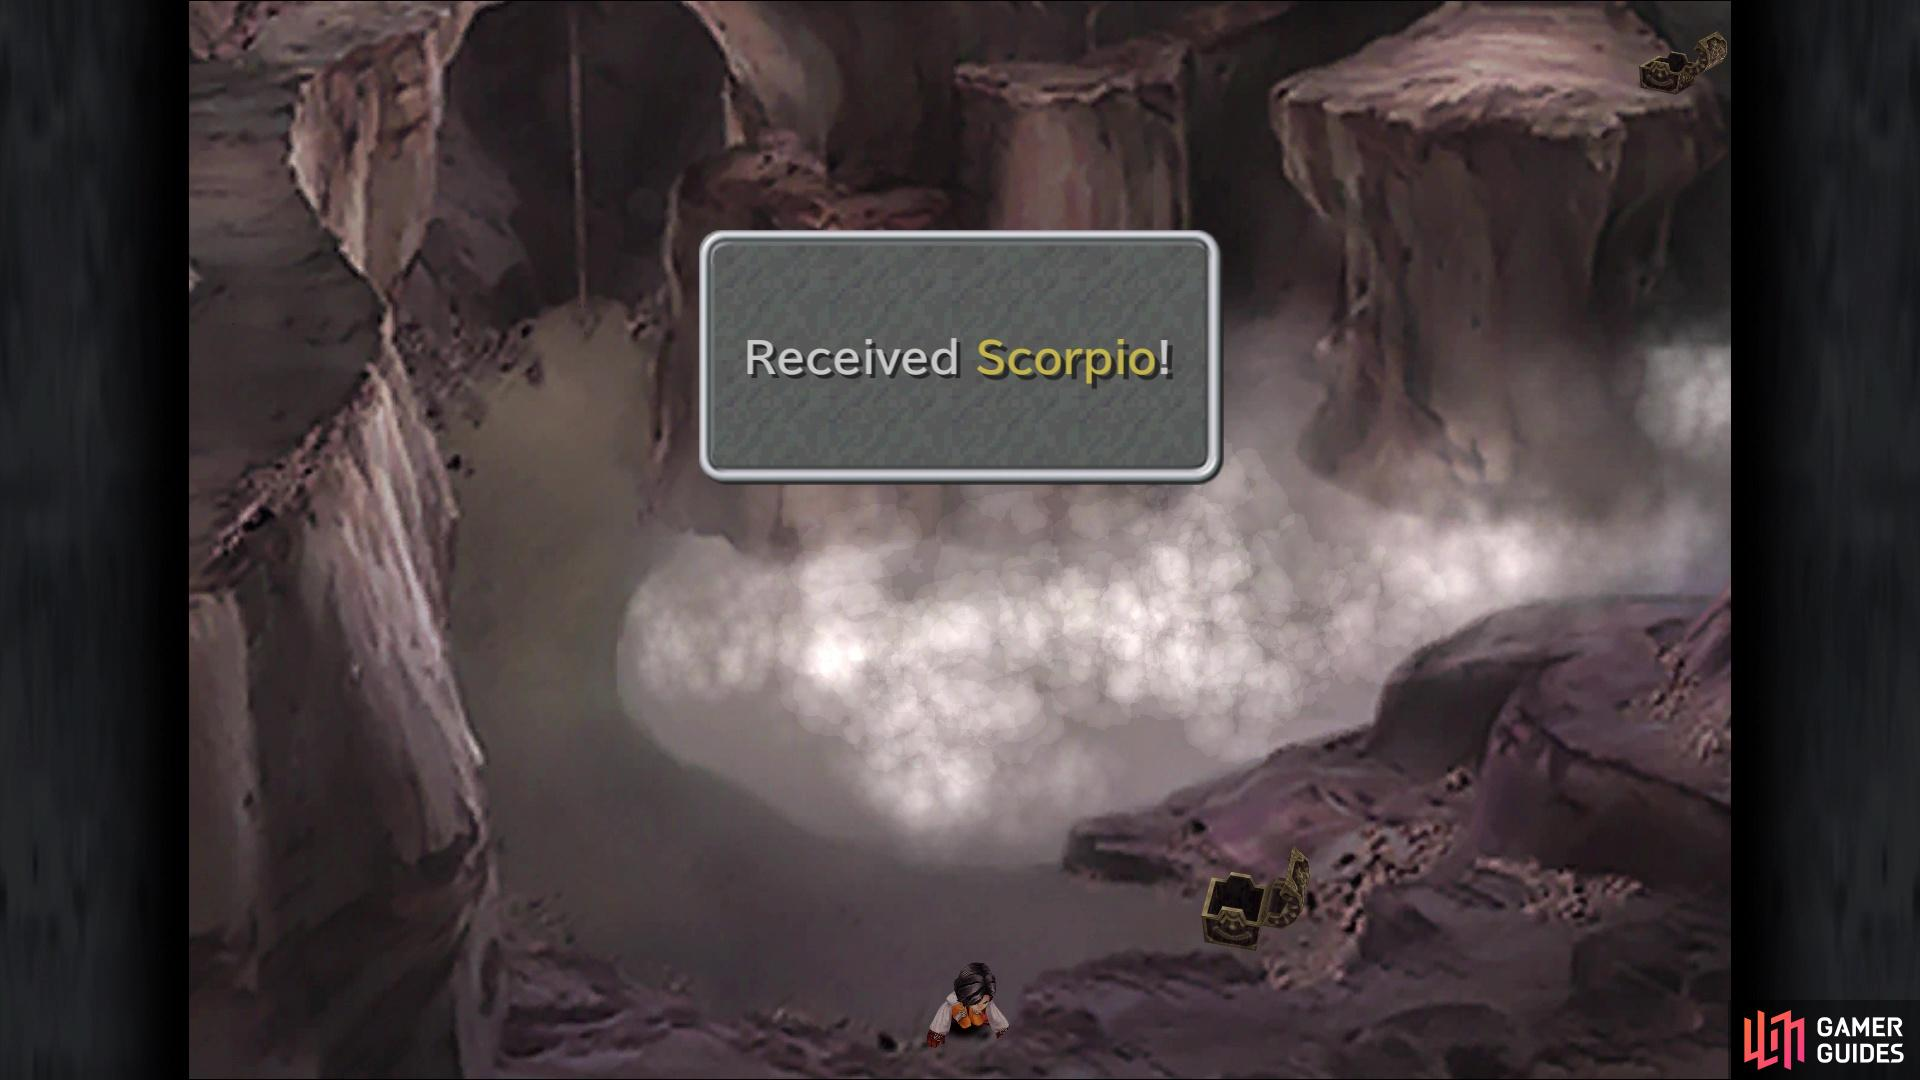 You can find the Scorpio coin at the bottom of the first screen in Quan's Dwelling